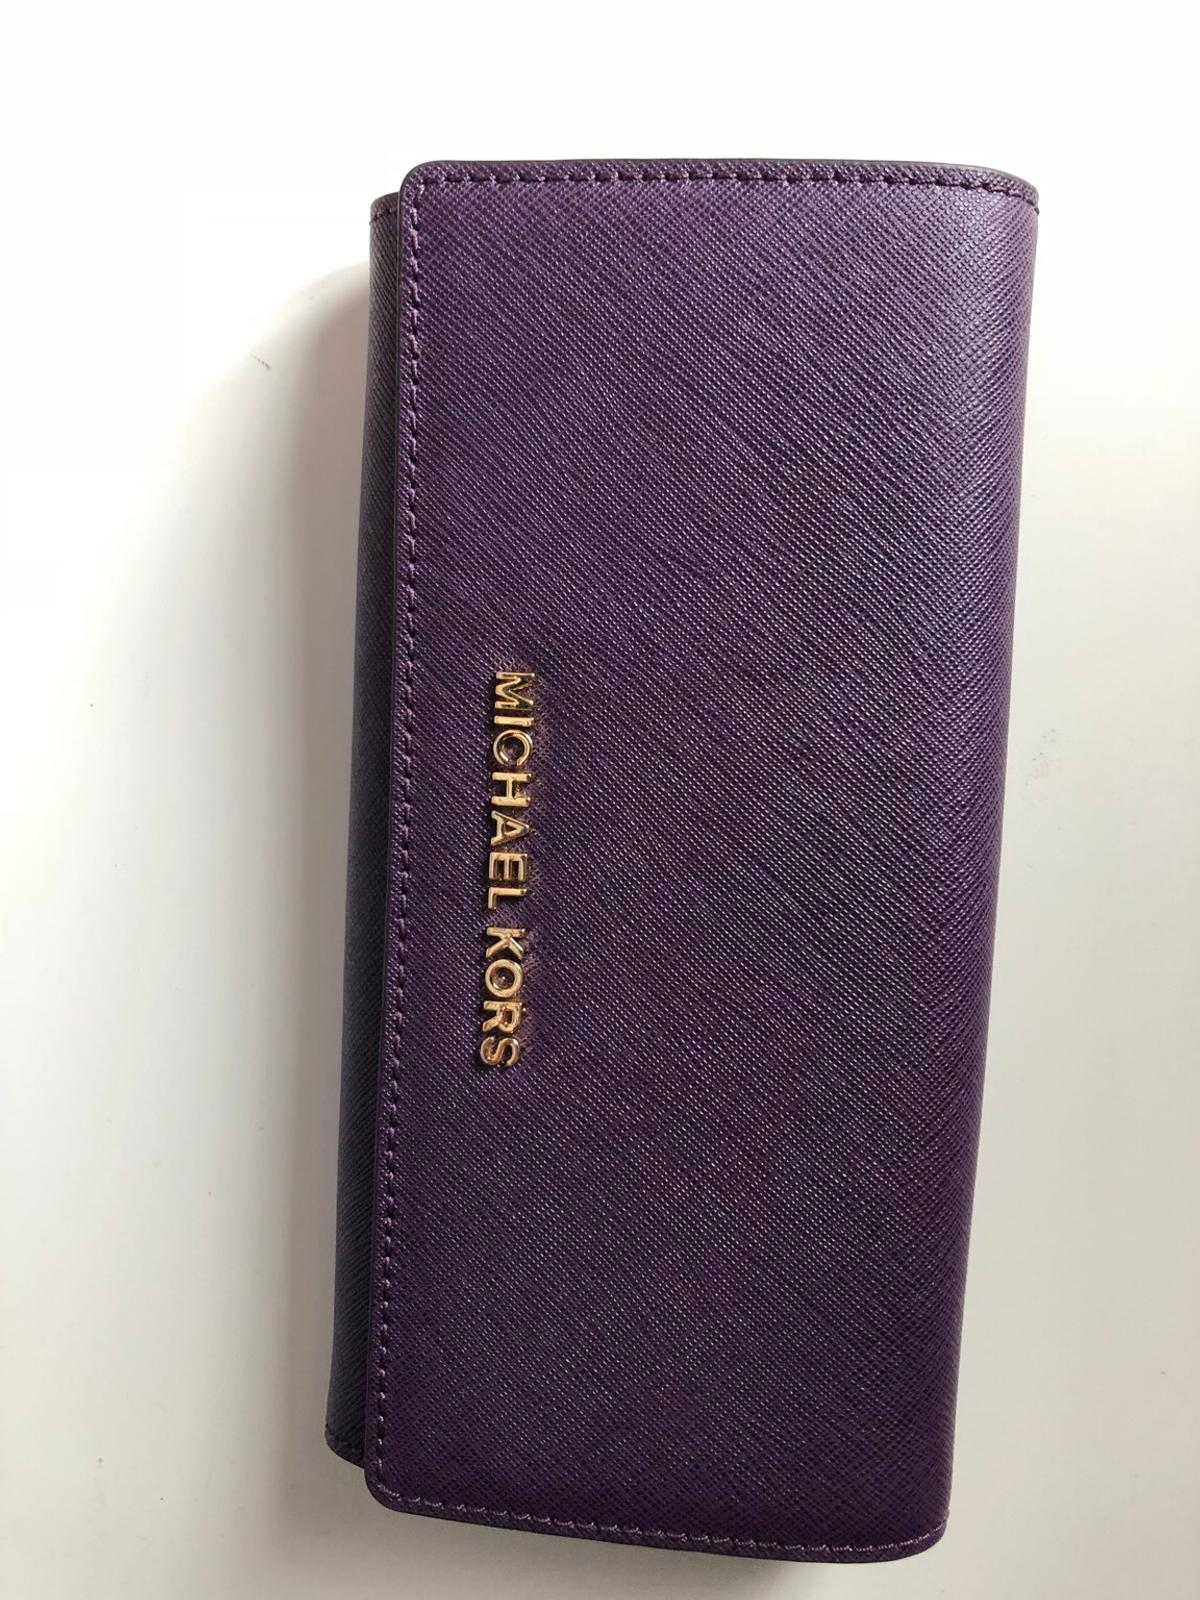 b3f76a9049189d Michael Kors purse in RM17 Grays for £35.00 for sale - Shpock